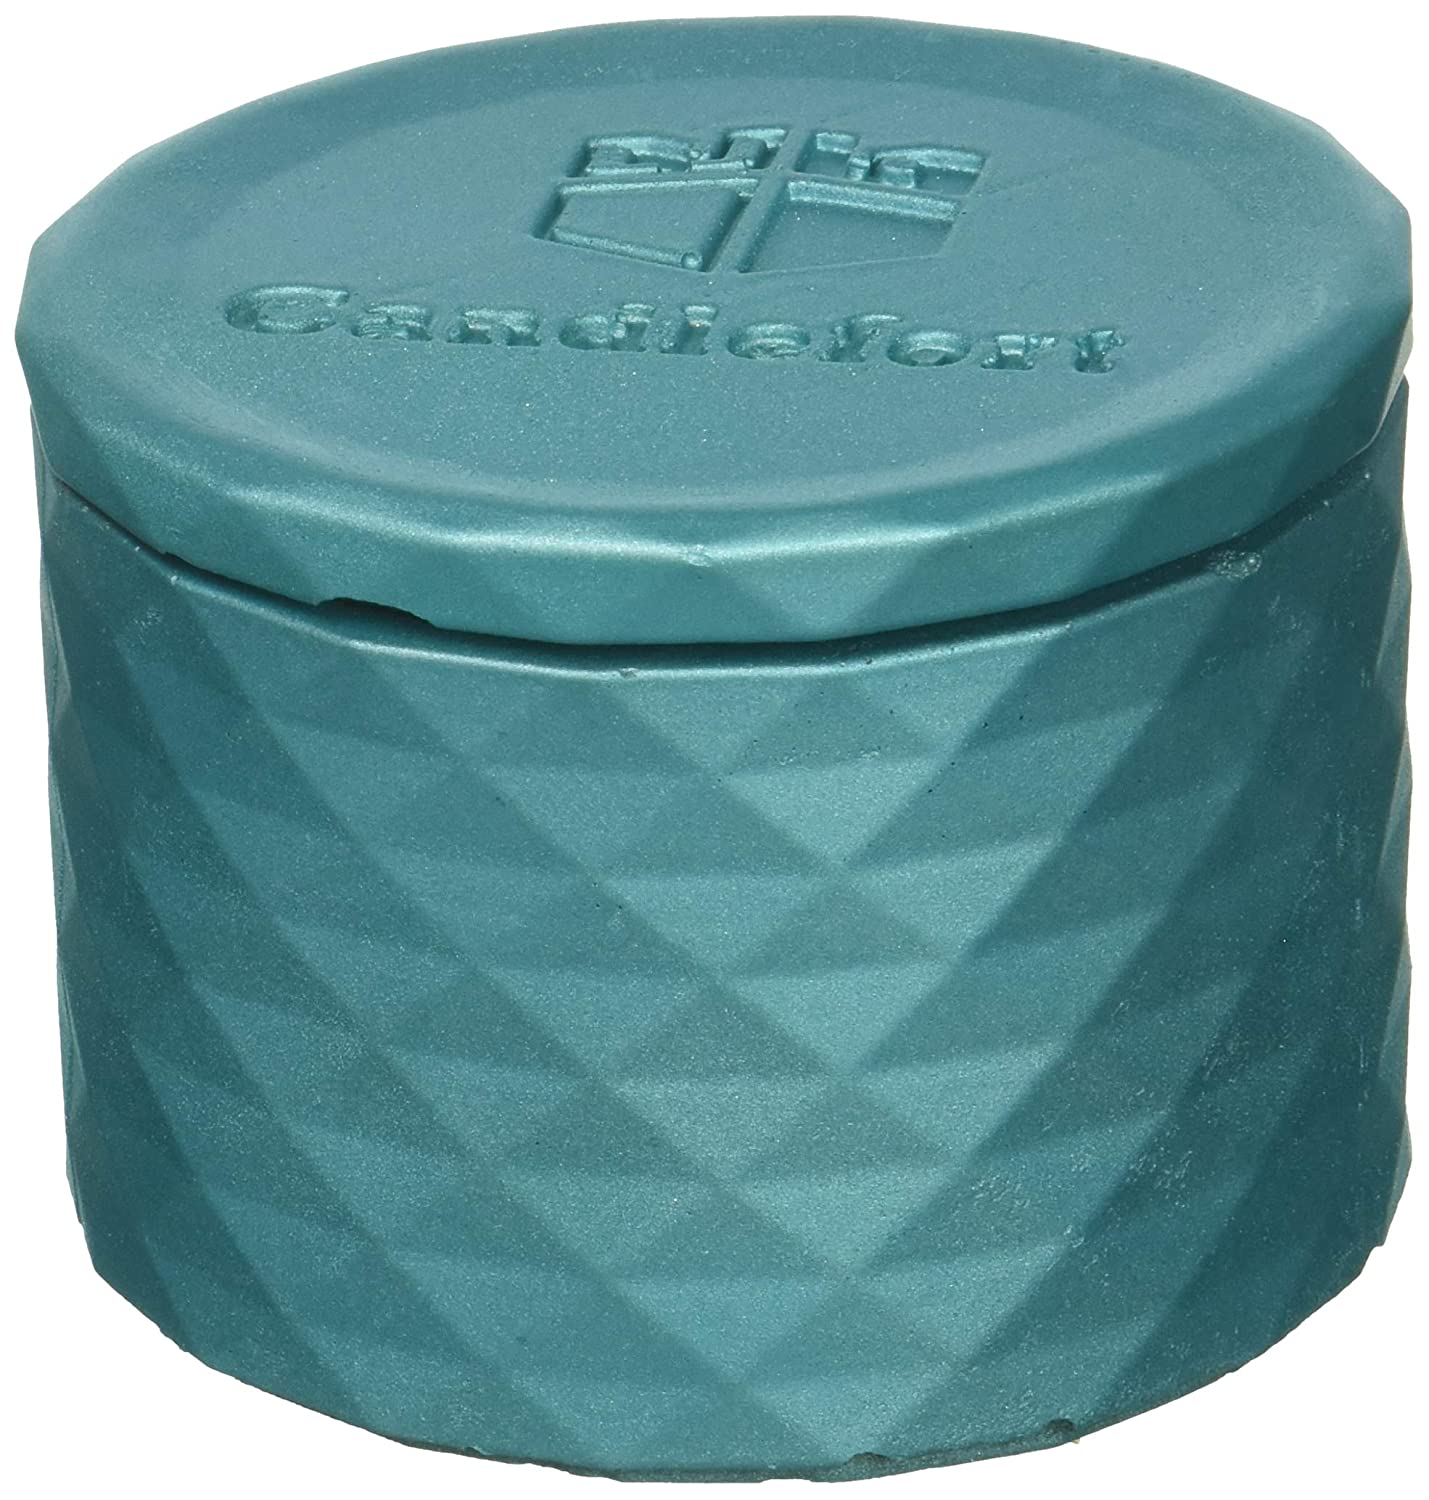 Scent Marine Blue Candellana Candles Candlefort Concrete Candle Lavender Hill Poly I